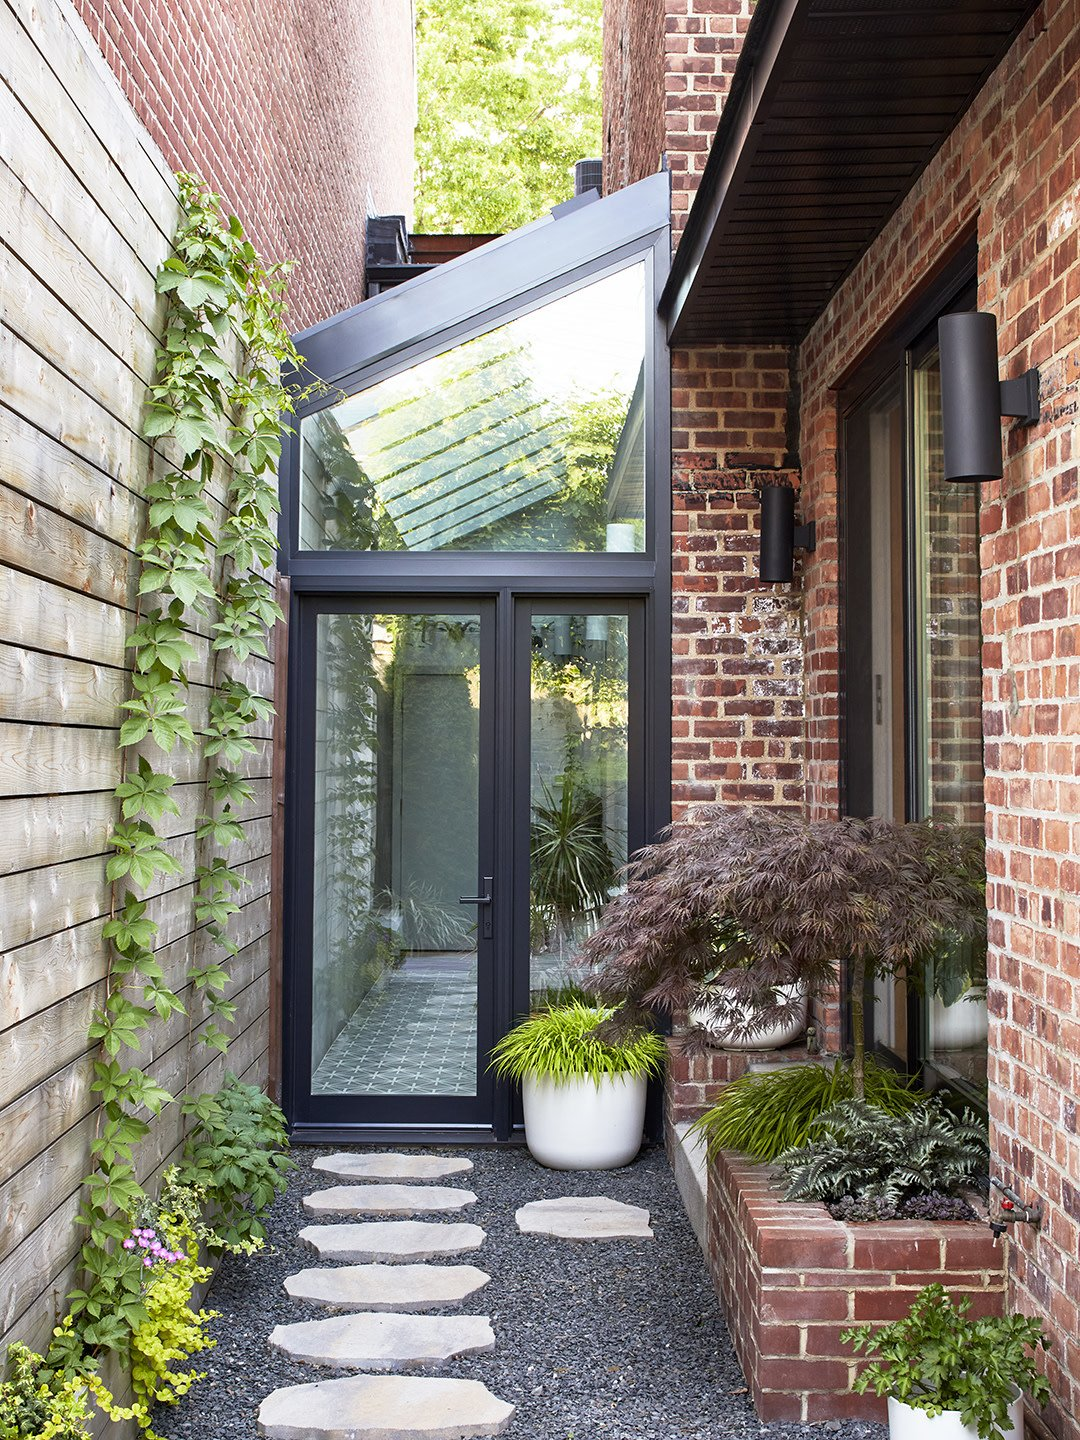 This Home's Living Room Roof Was an Opportunity for a Dreamy Bedroom Terrace